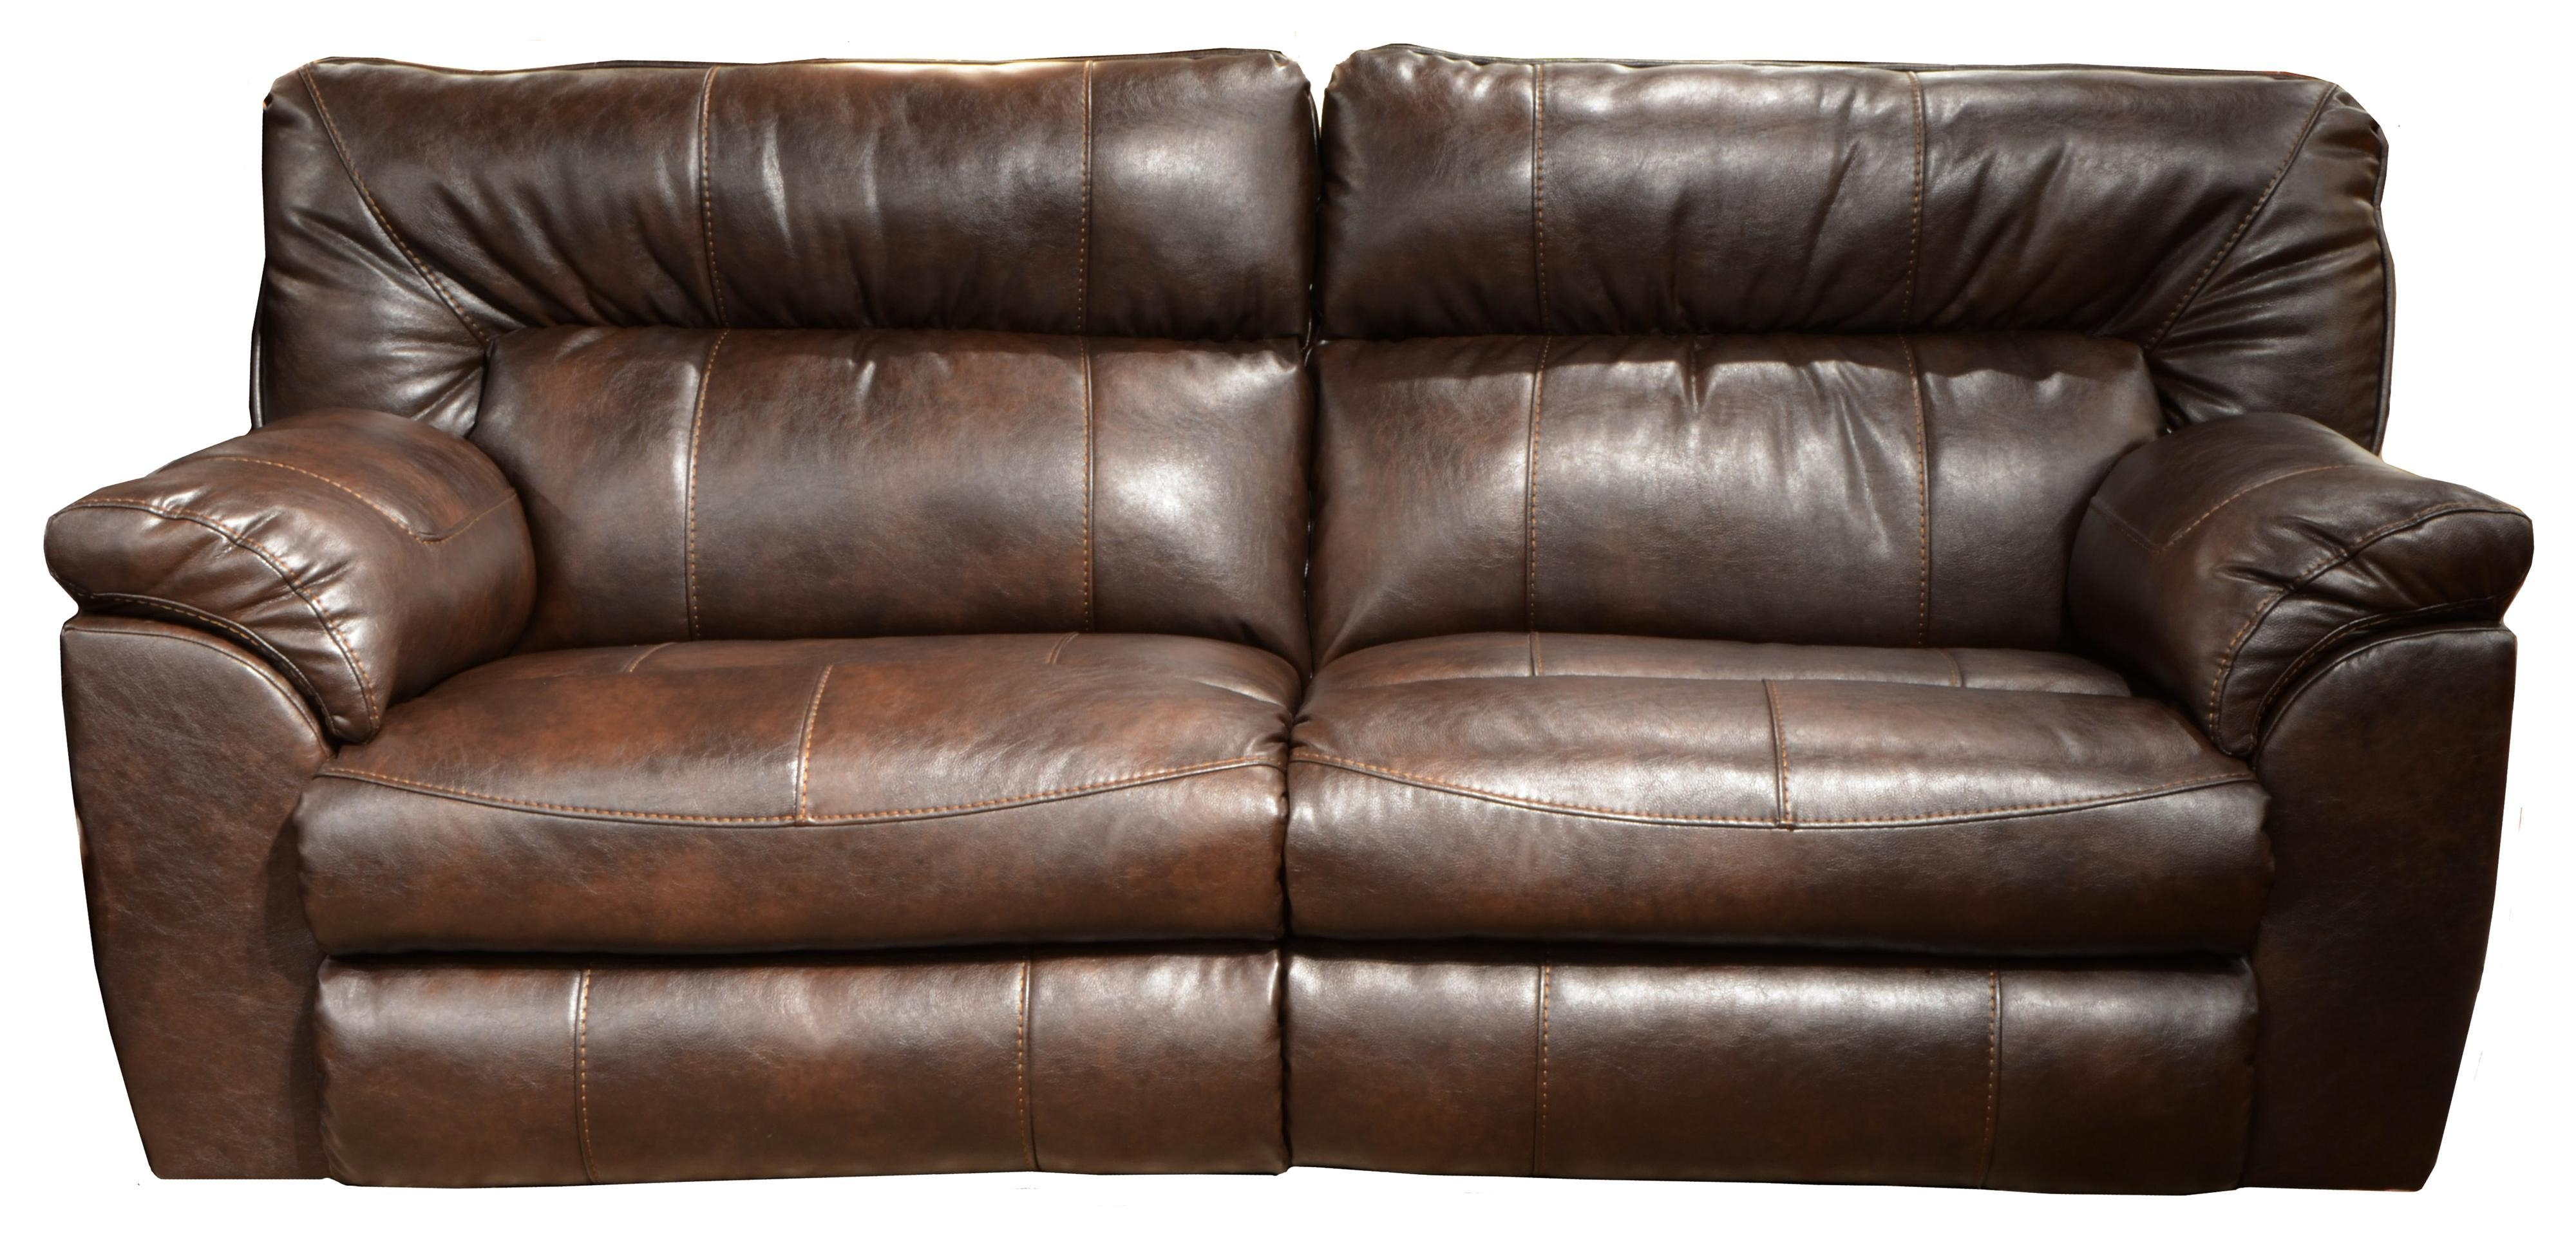 Catnapper Maverick Extra Wide Reclining Sofa – Efo Furniture With Regard To Catnapper Sofas (Image 7 of 20)